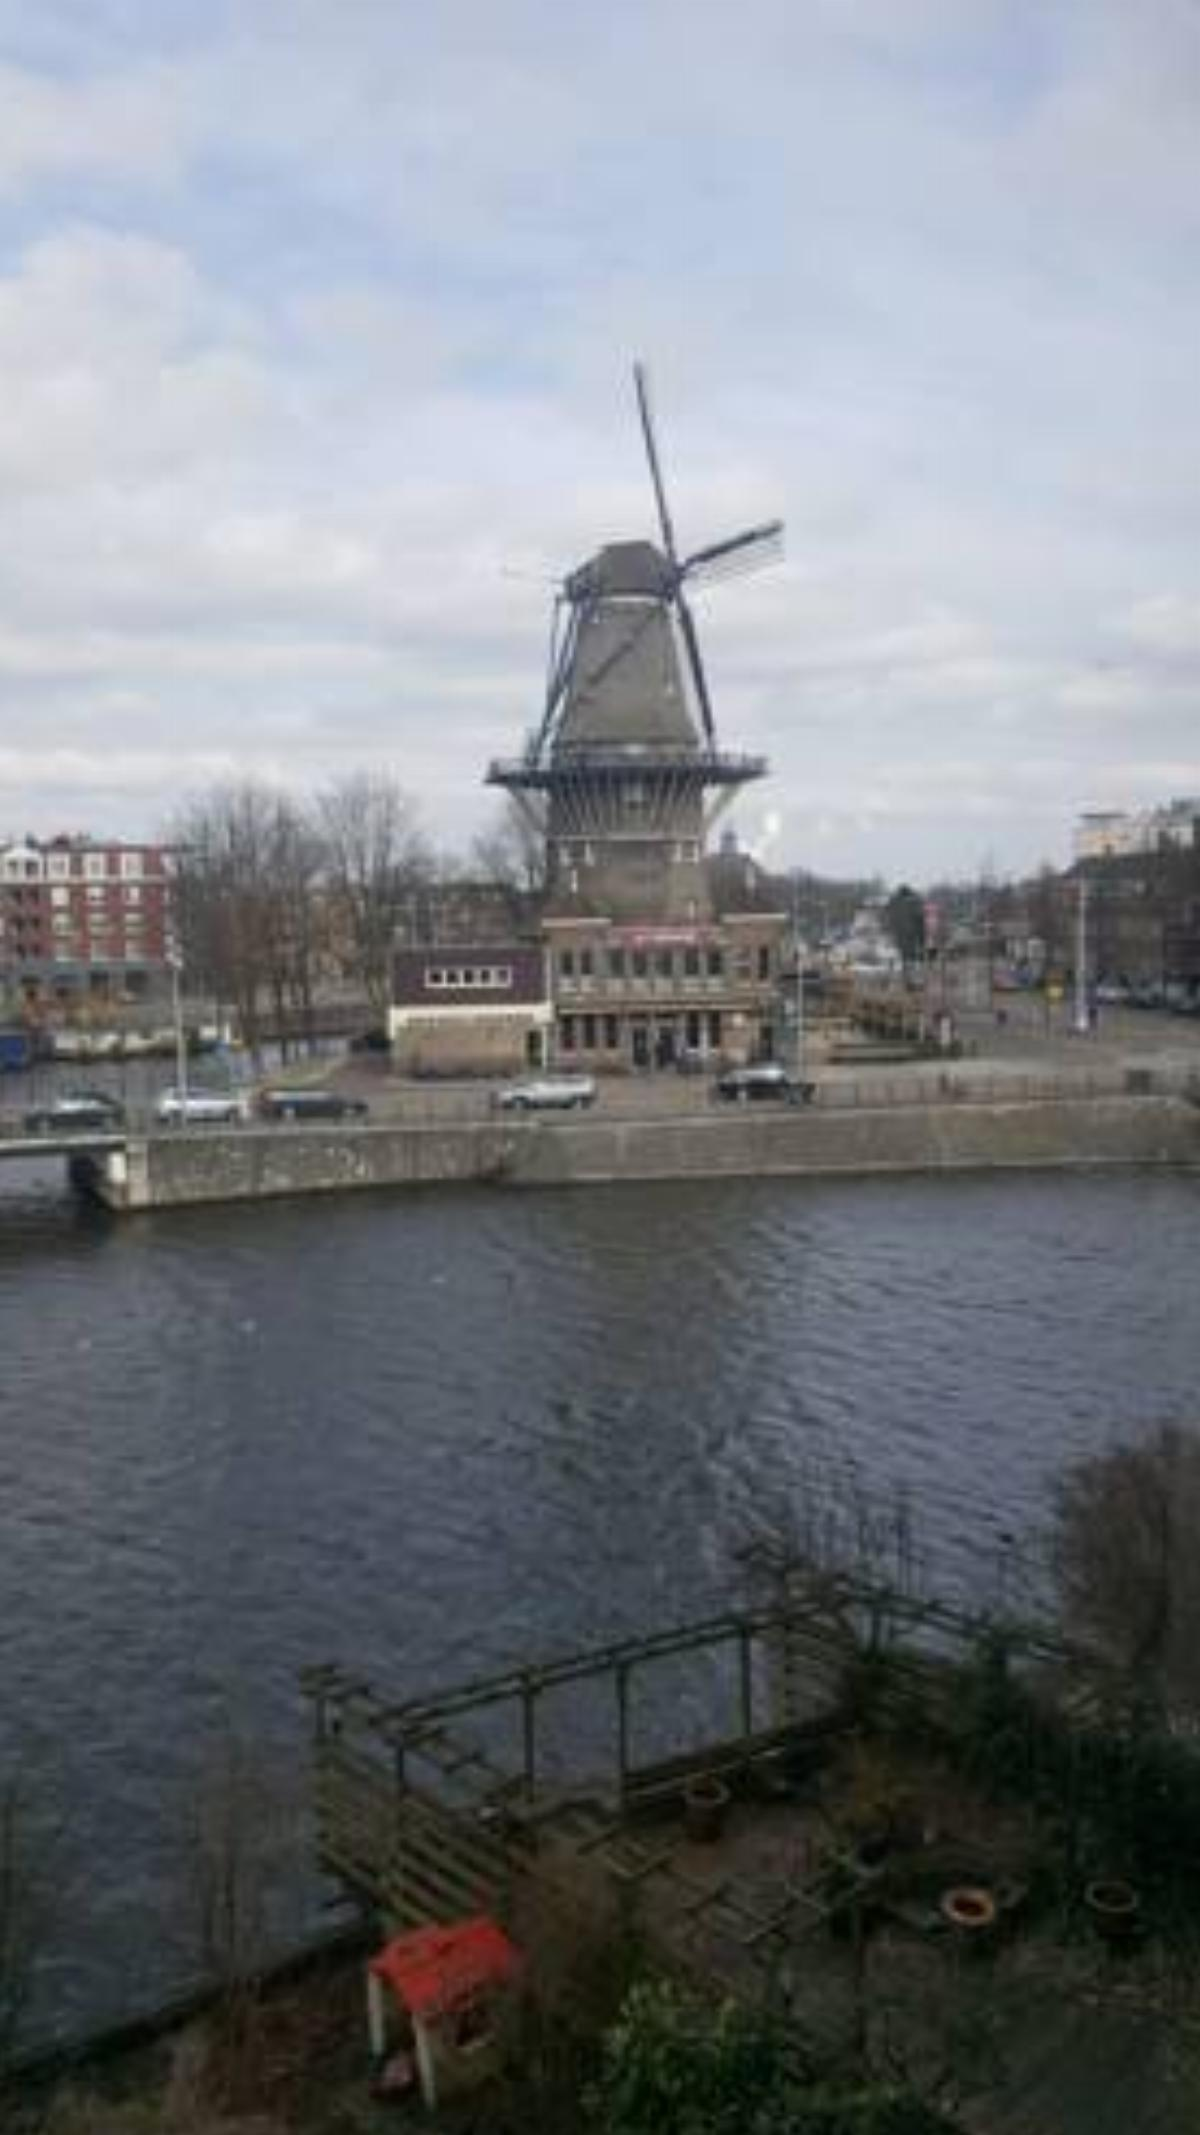 Amazing canalapartment with windmillview in city center! Hotel Amsterdam Netherlands